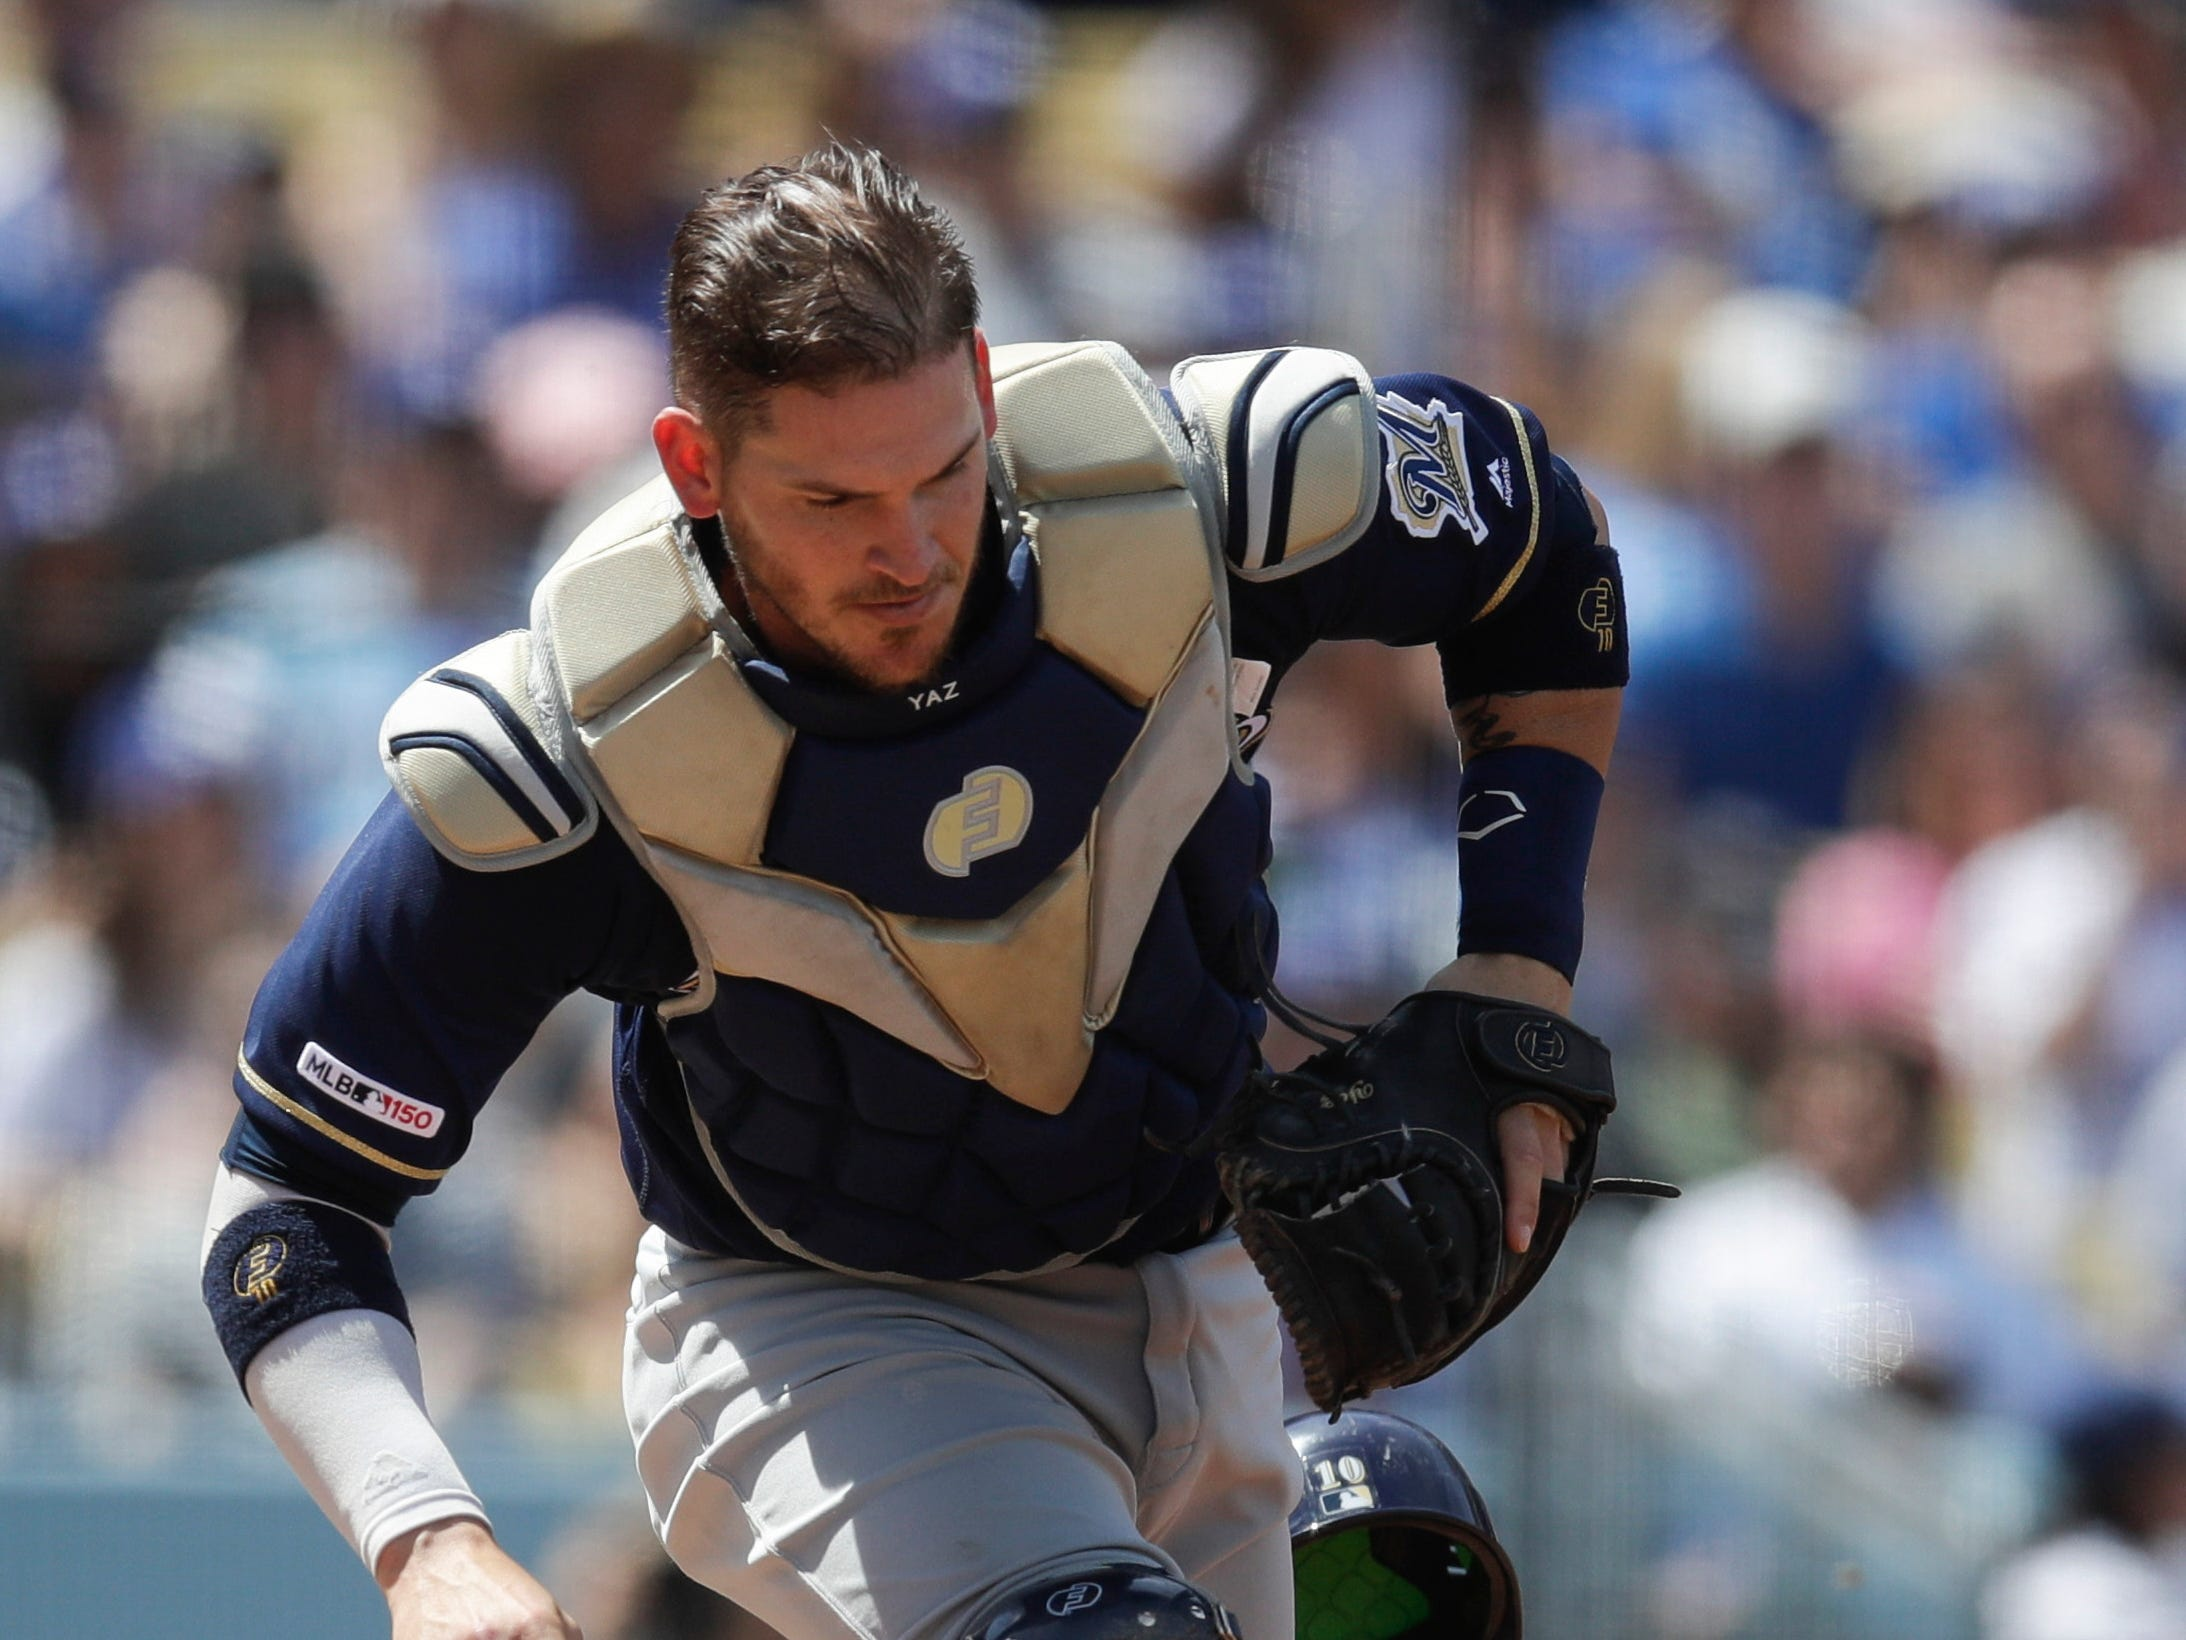 Brewers catcher Yasmani Grandal chases a foul ball.